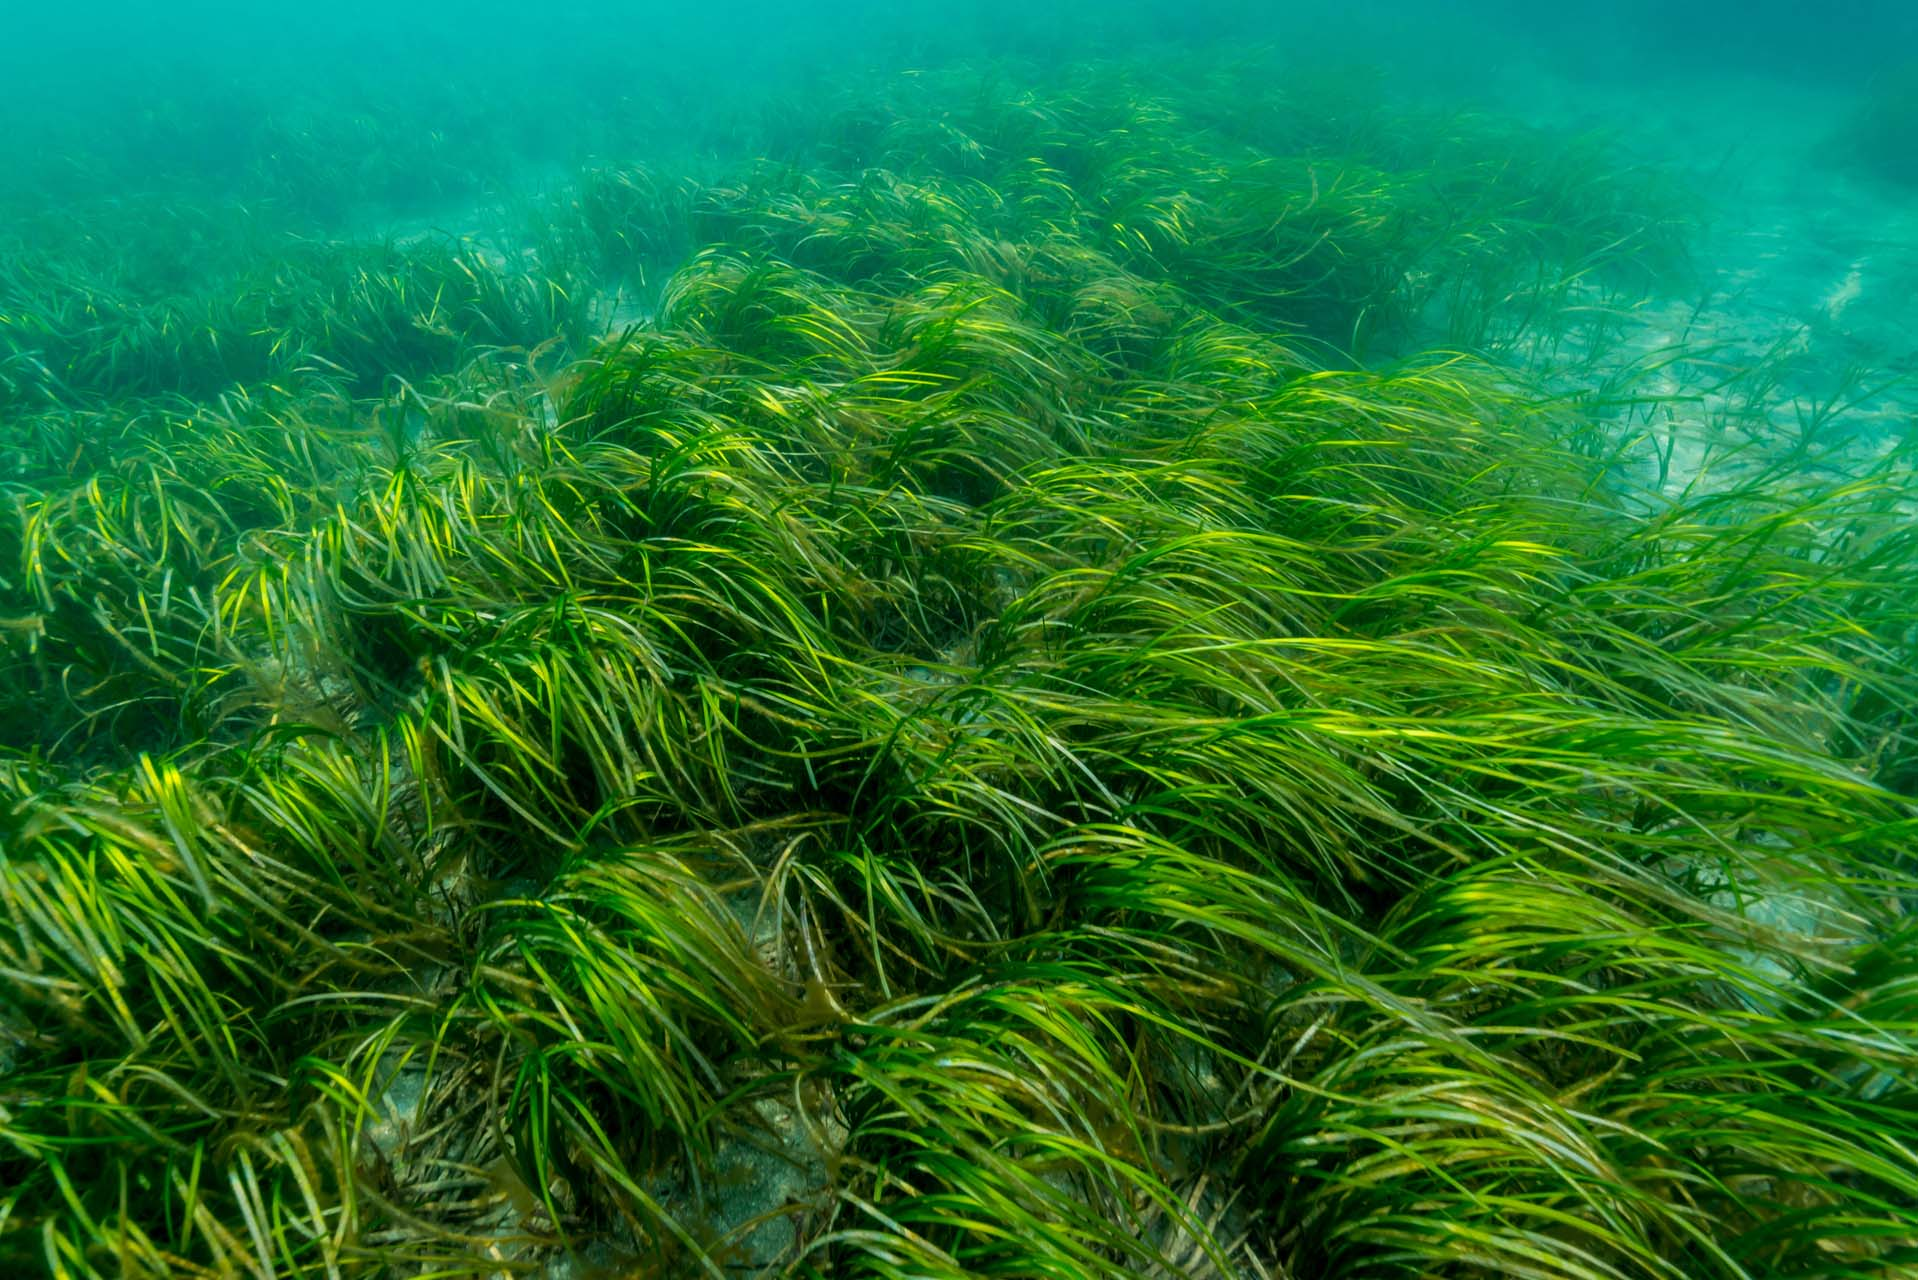 submerged coastal vegetation